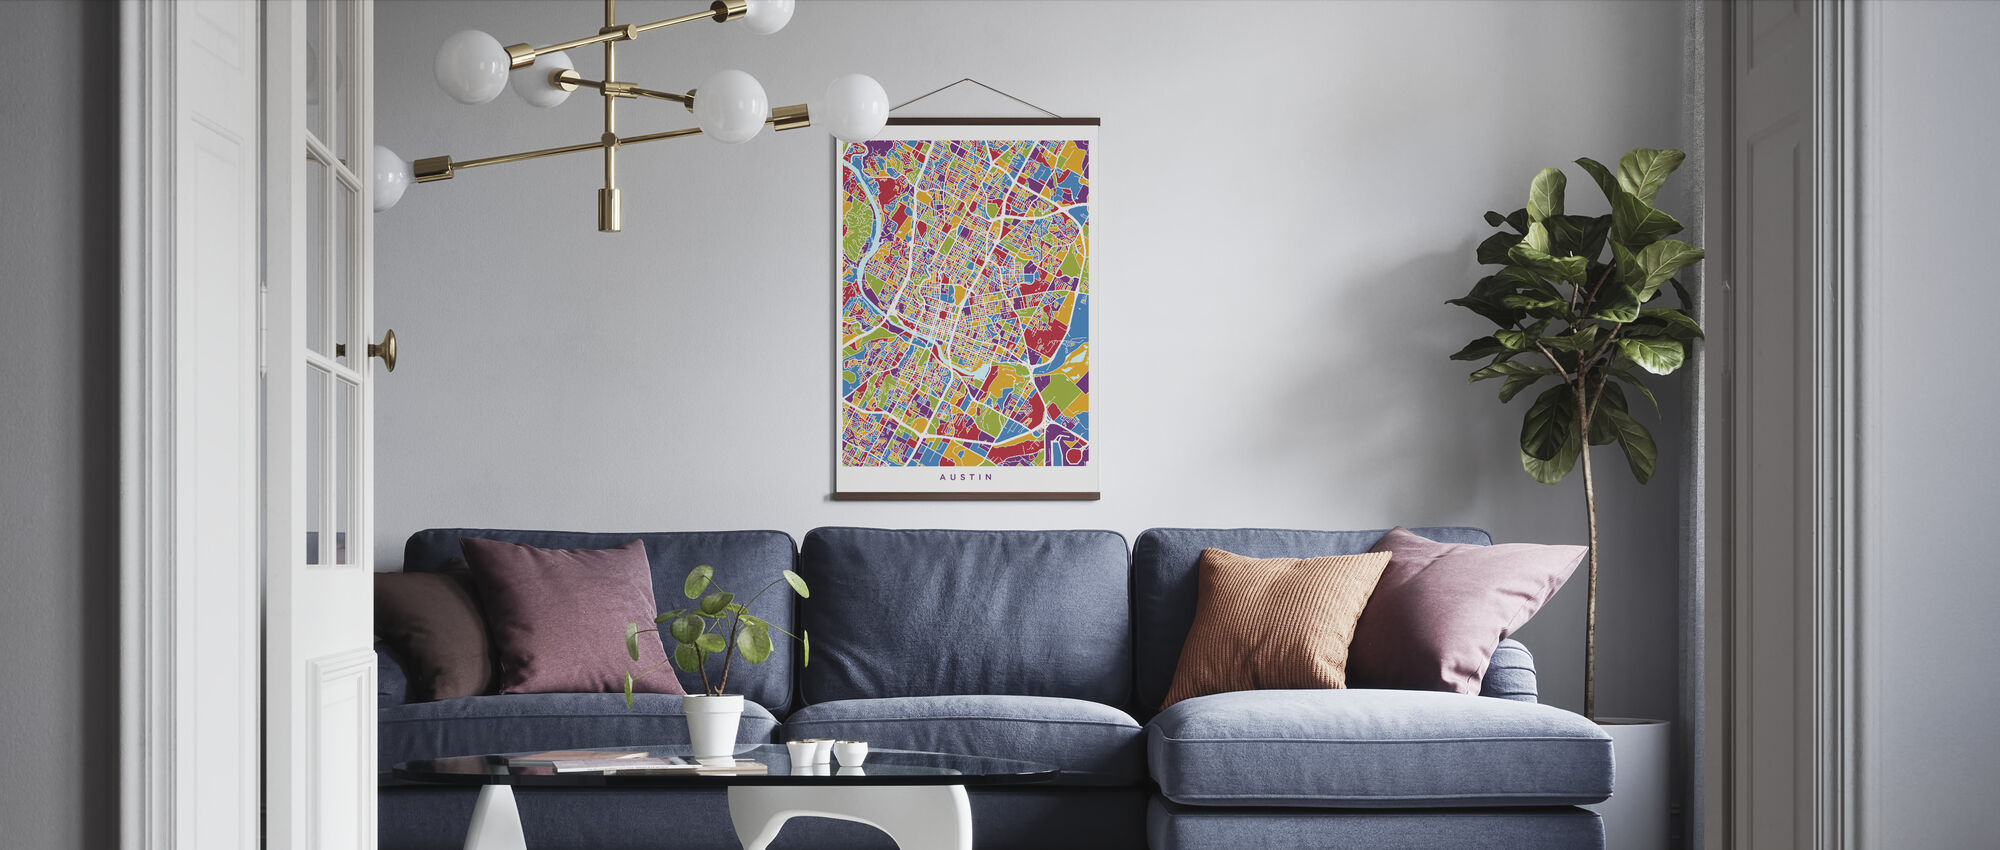 Austin Texas City Map - Poster - Living Room